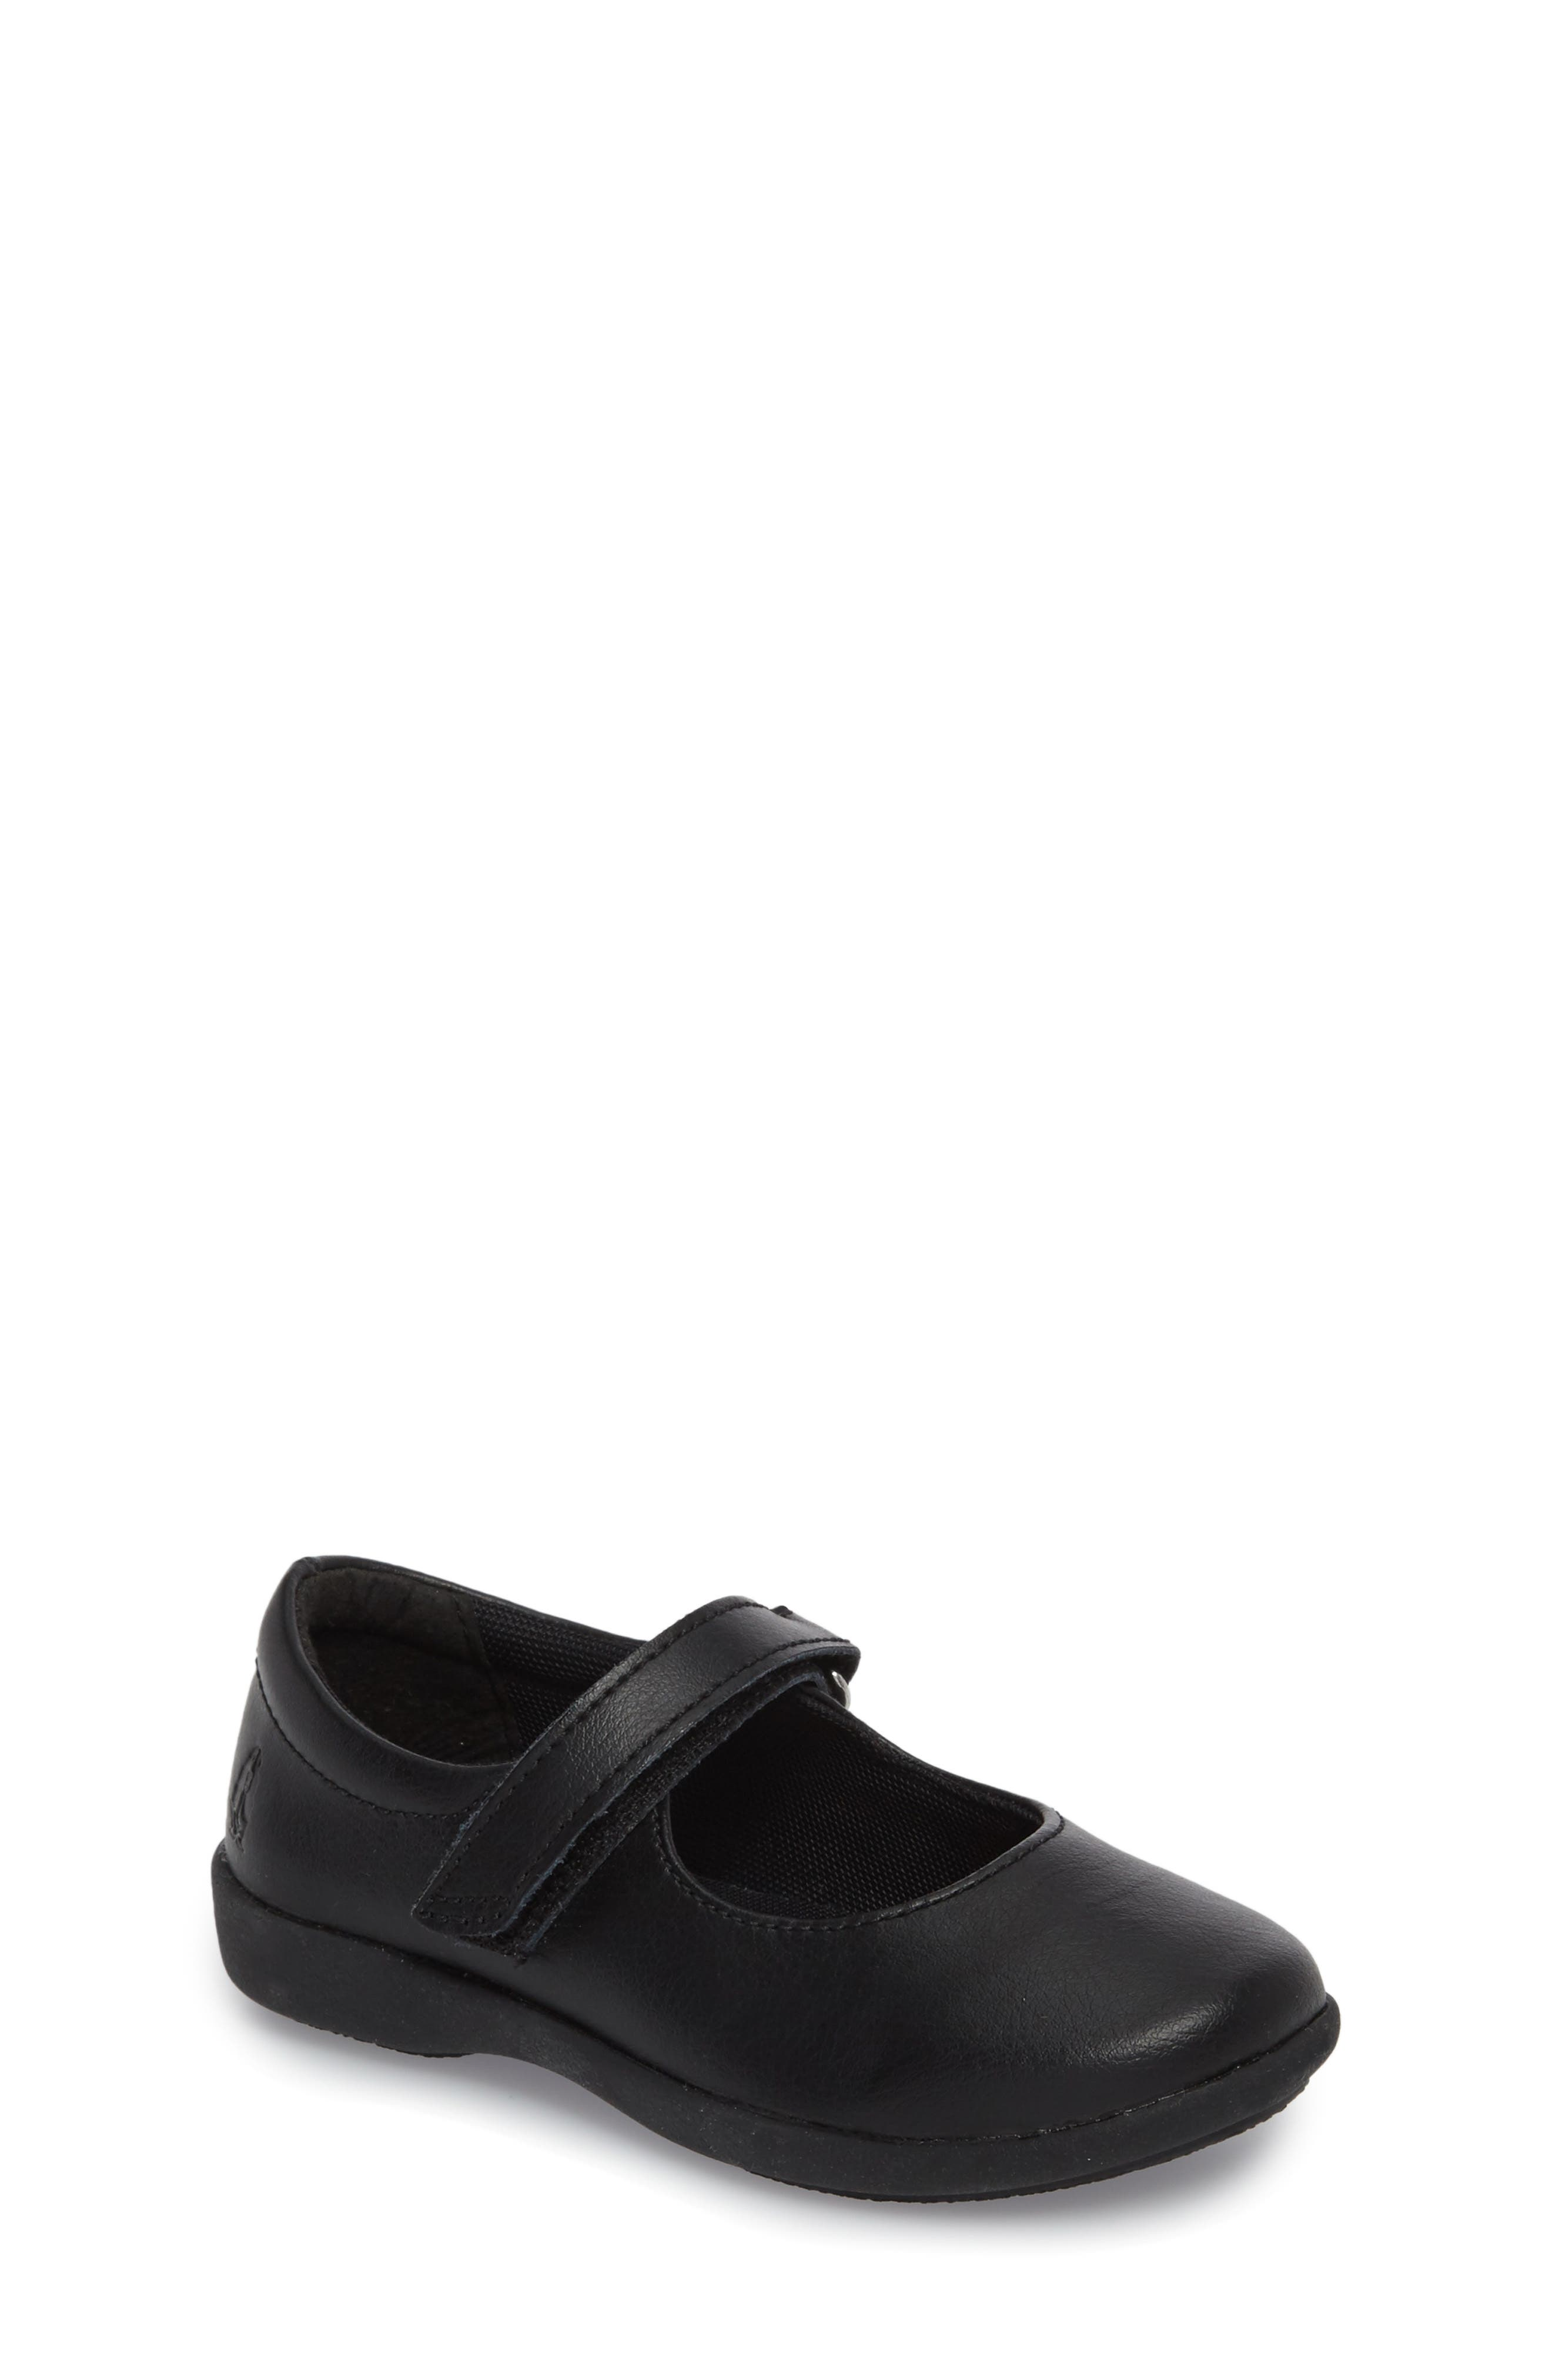 HUSH PUPPIES<SUP>®</SUP>, Lexi Mary Jane Flat, Main thumbnail 1, color, BLACK LEATHER